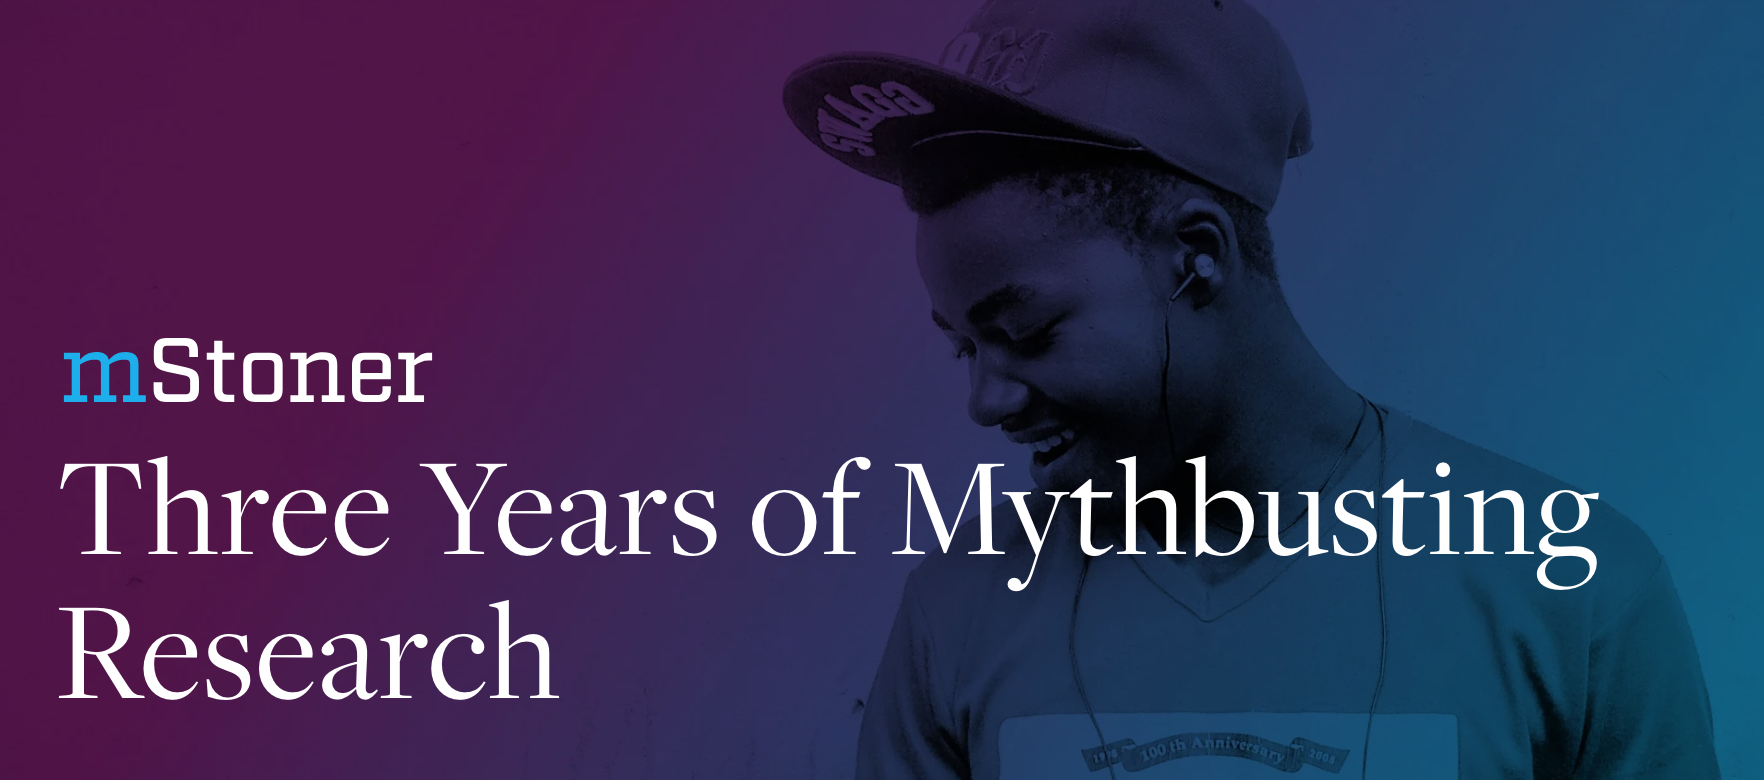 mStoner Three Years of Mythbusting Research